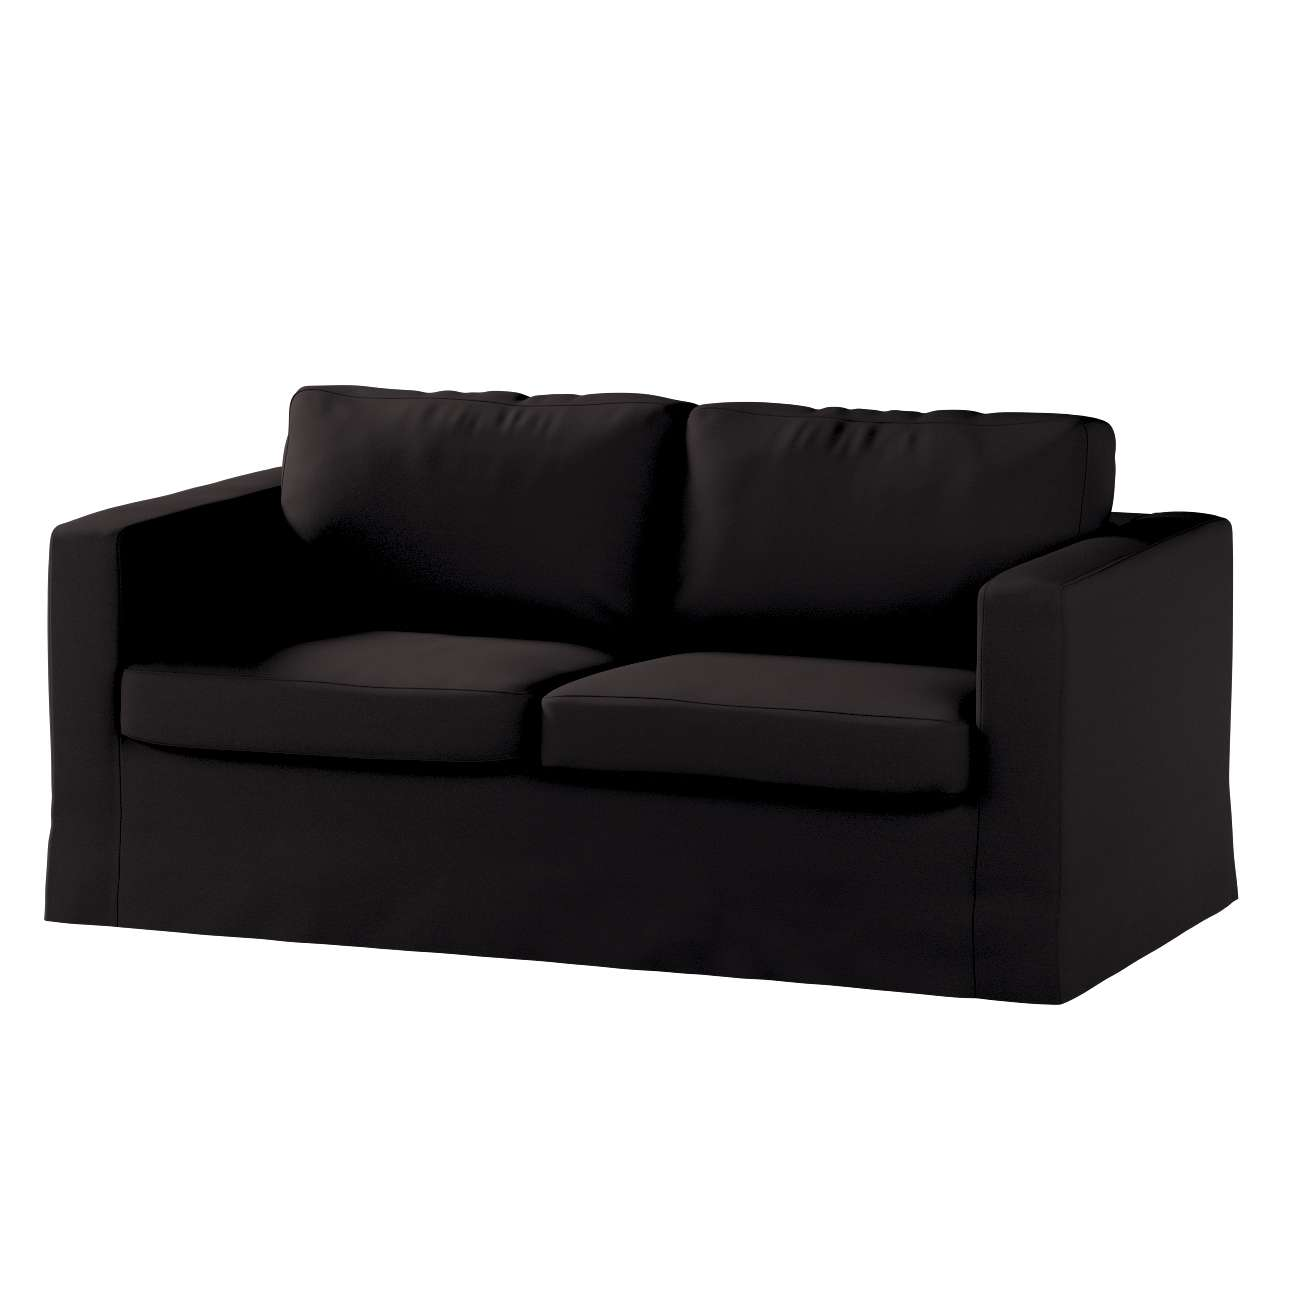 length of 2 seater sofa black leather with chrome legs floor karlstad cover dekoria in collection panama cotton fabric 702